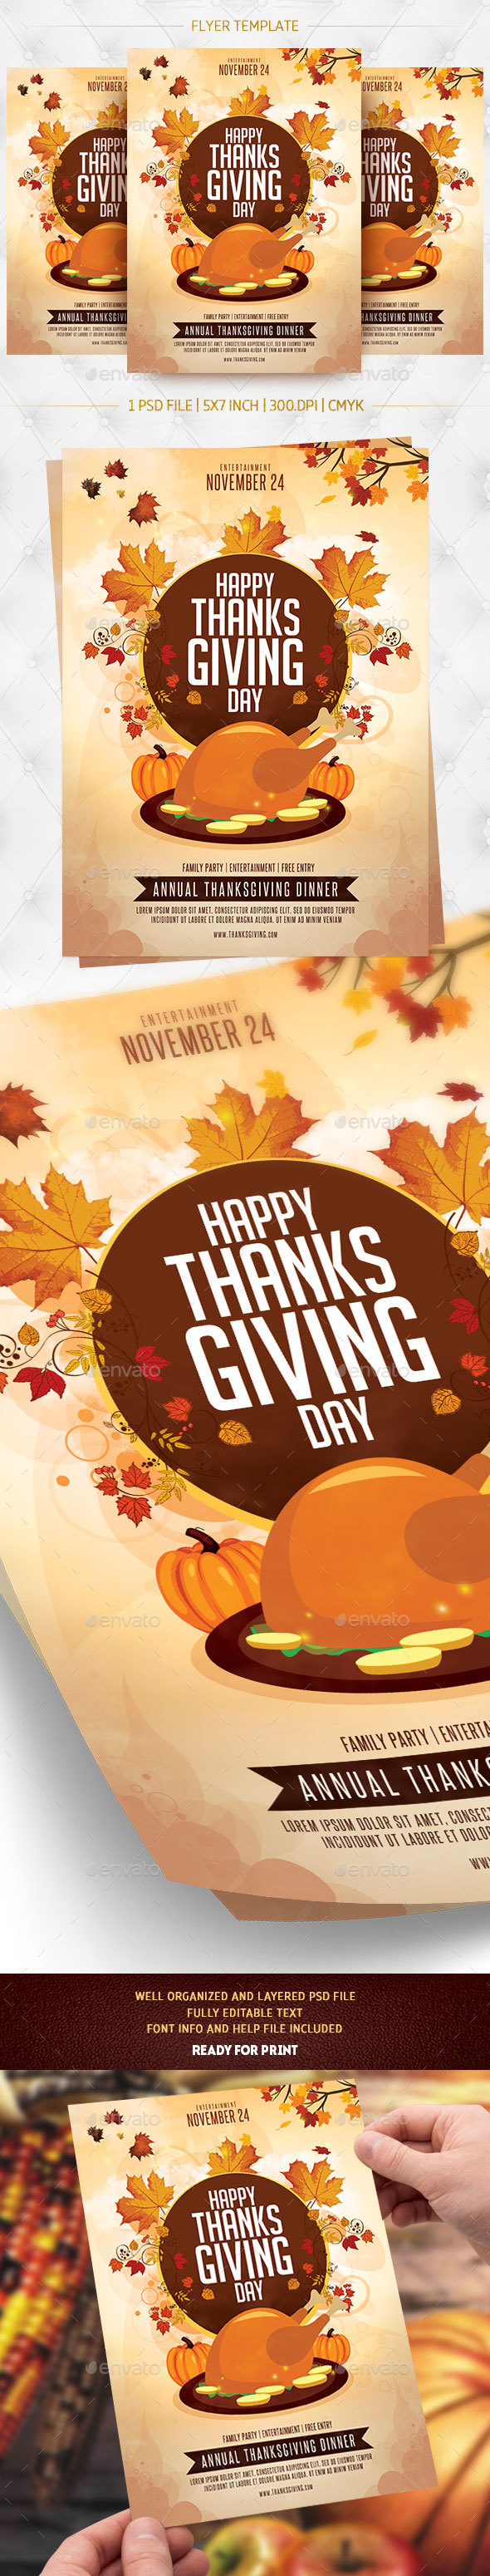 Thanksgiving Day Flyer Template v2 - Holidays Events